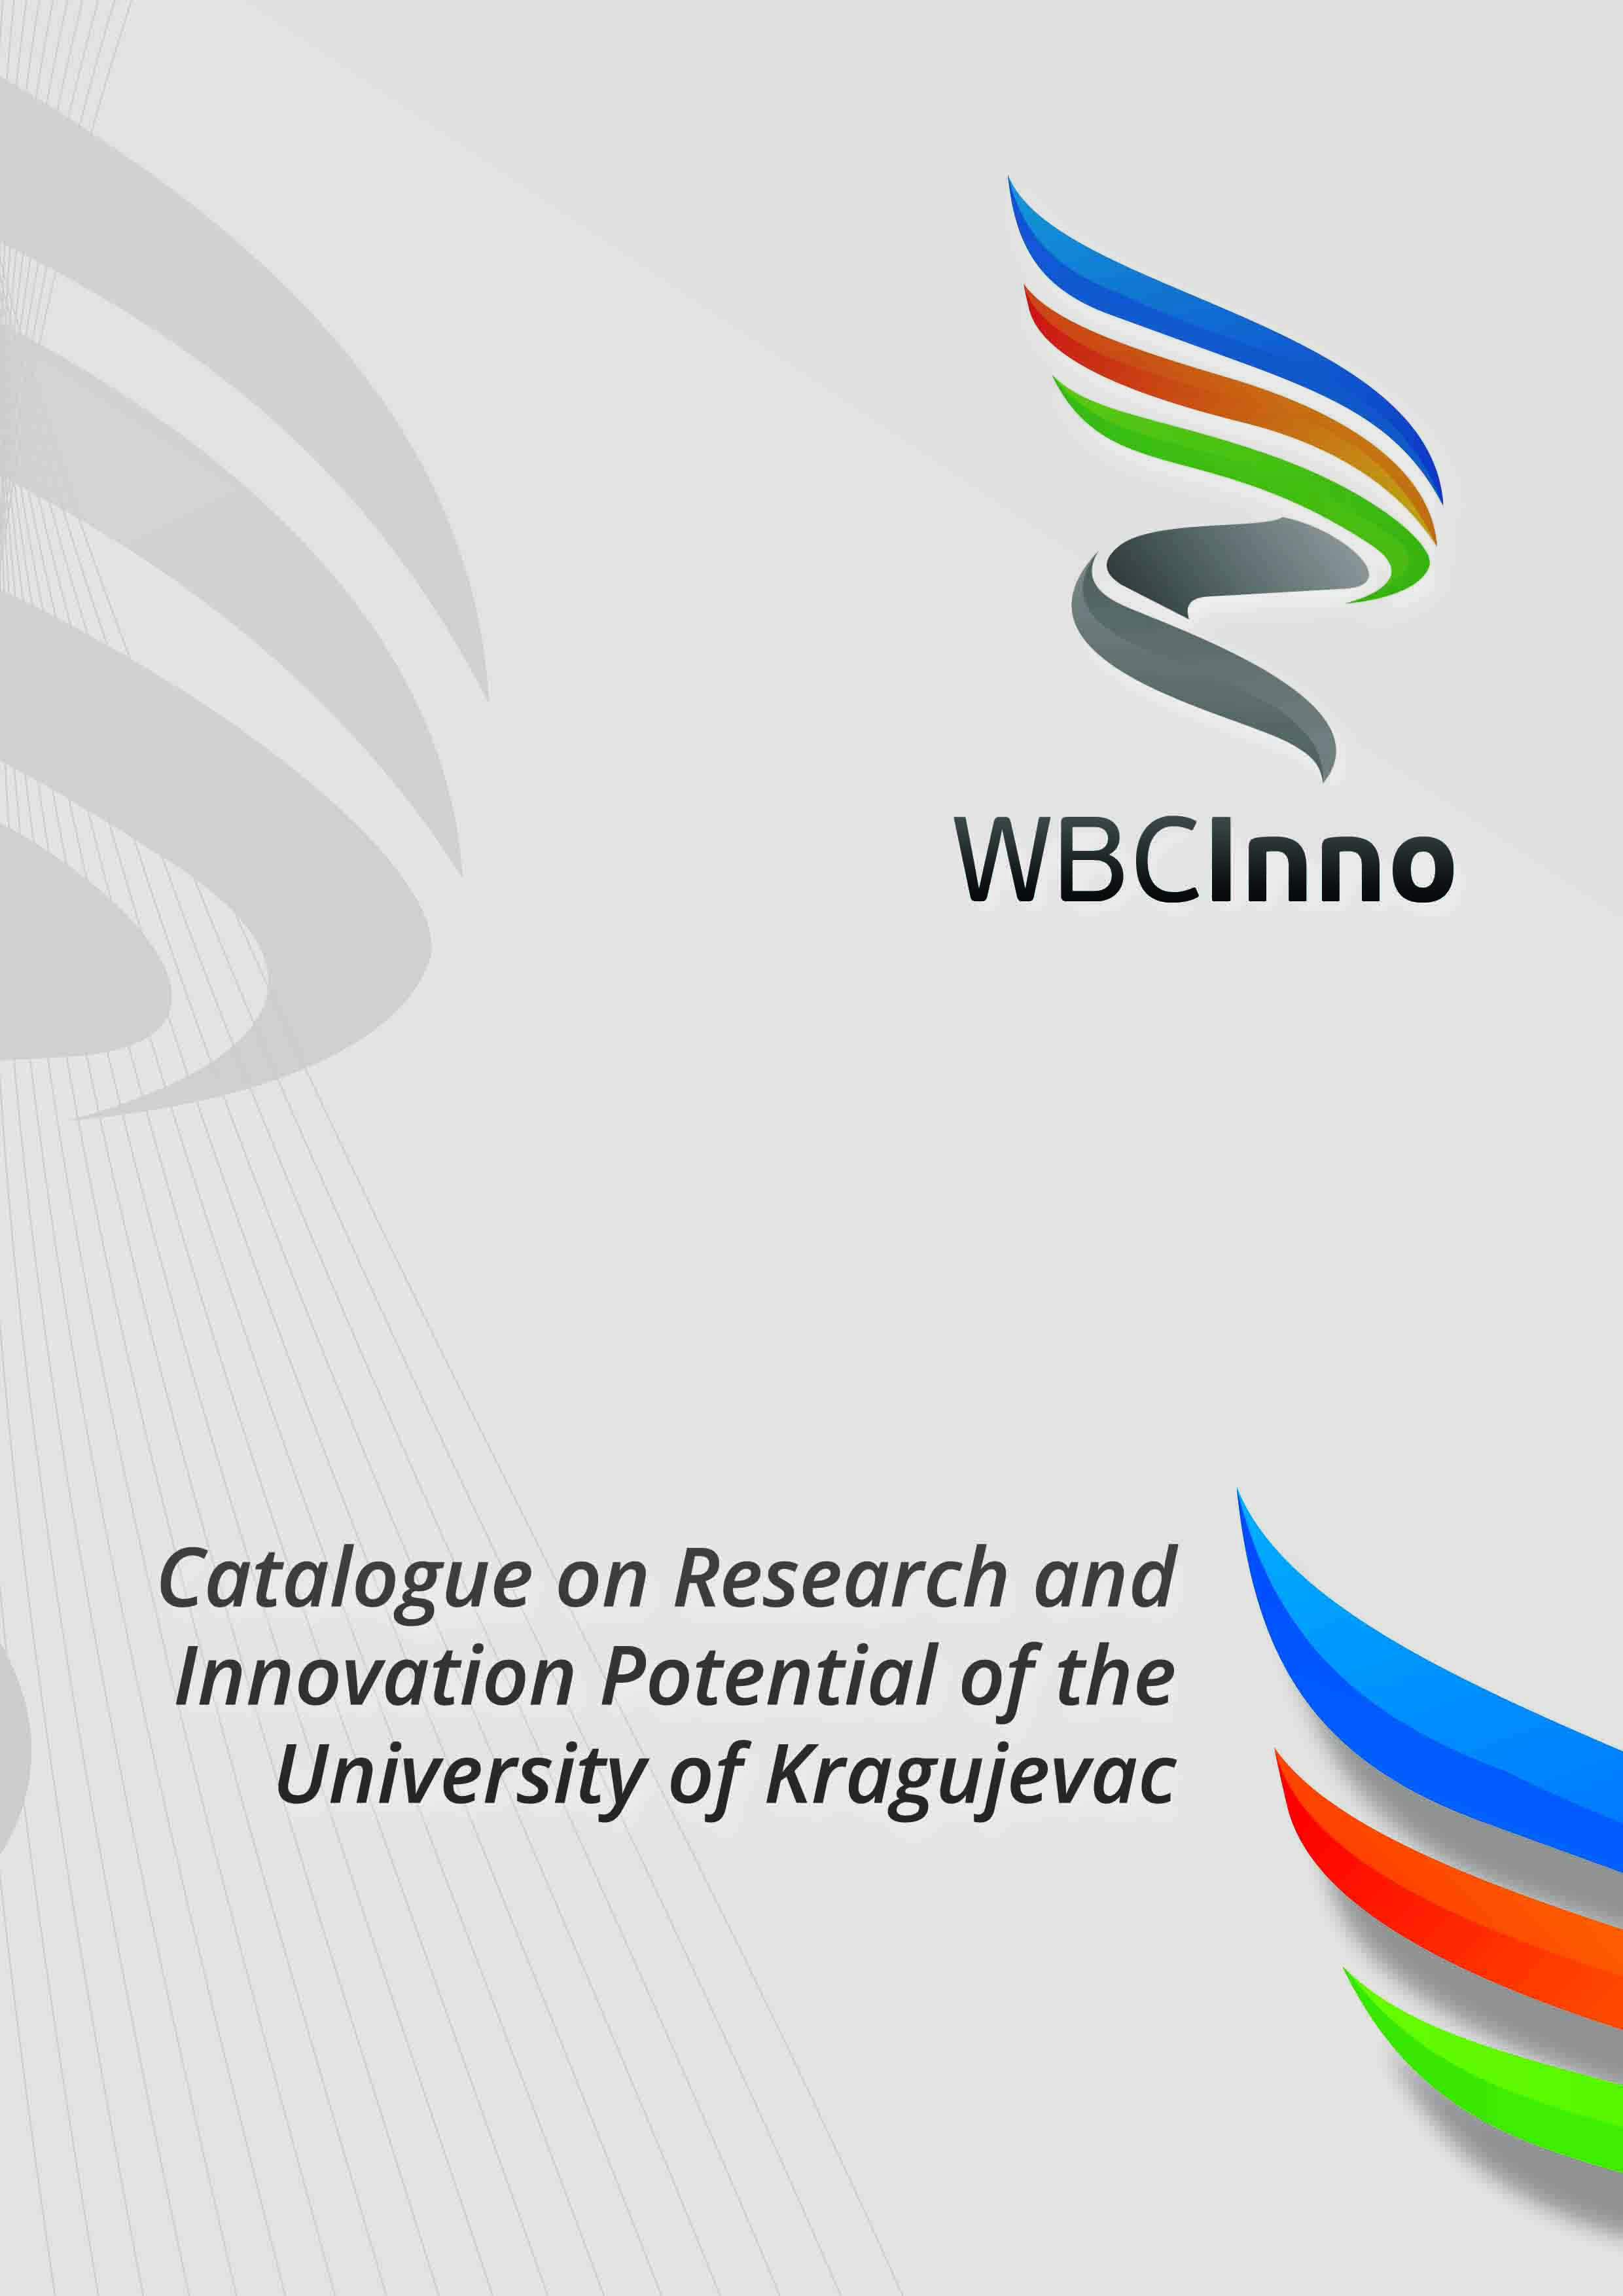 Catalogue on Research and Innovation potential of the University of Kragujevac - updated version